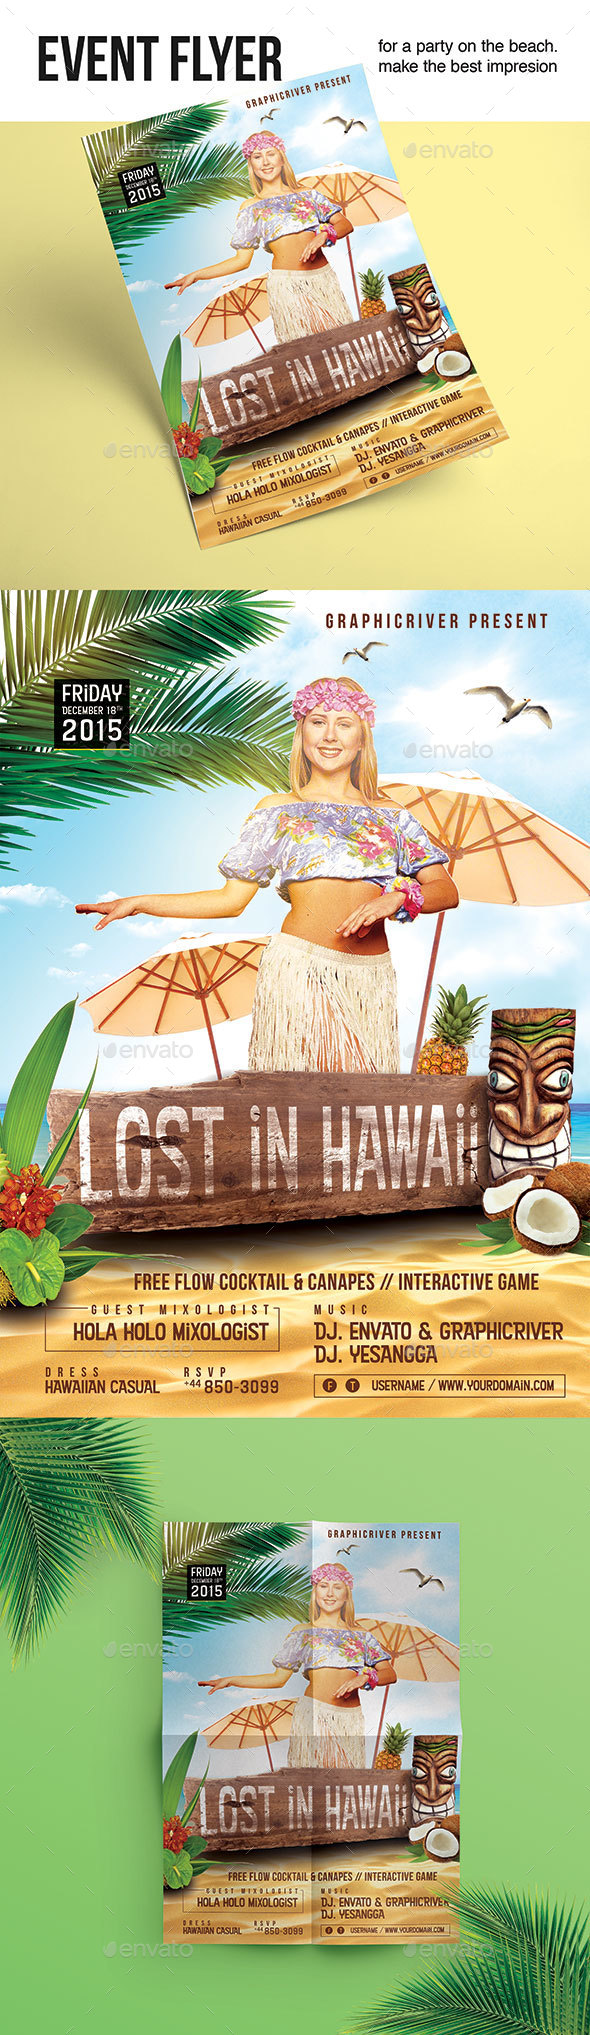 flyer lost in hawaii flyer template psd design download http